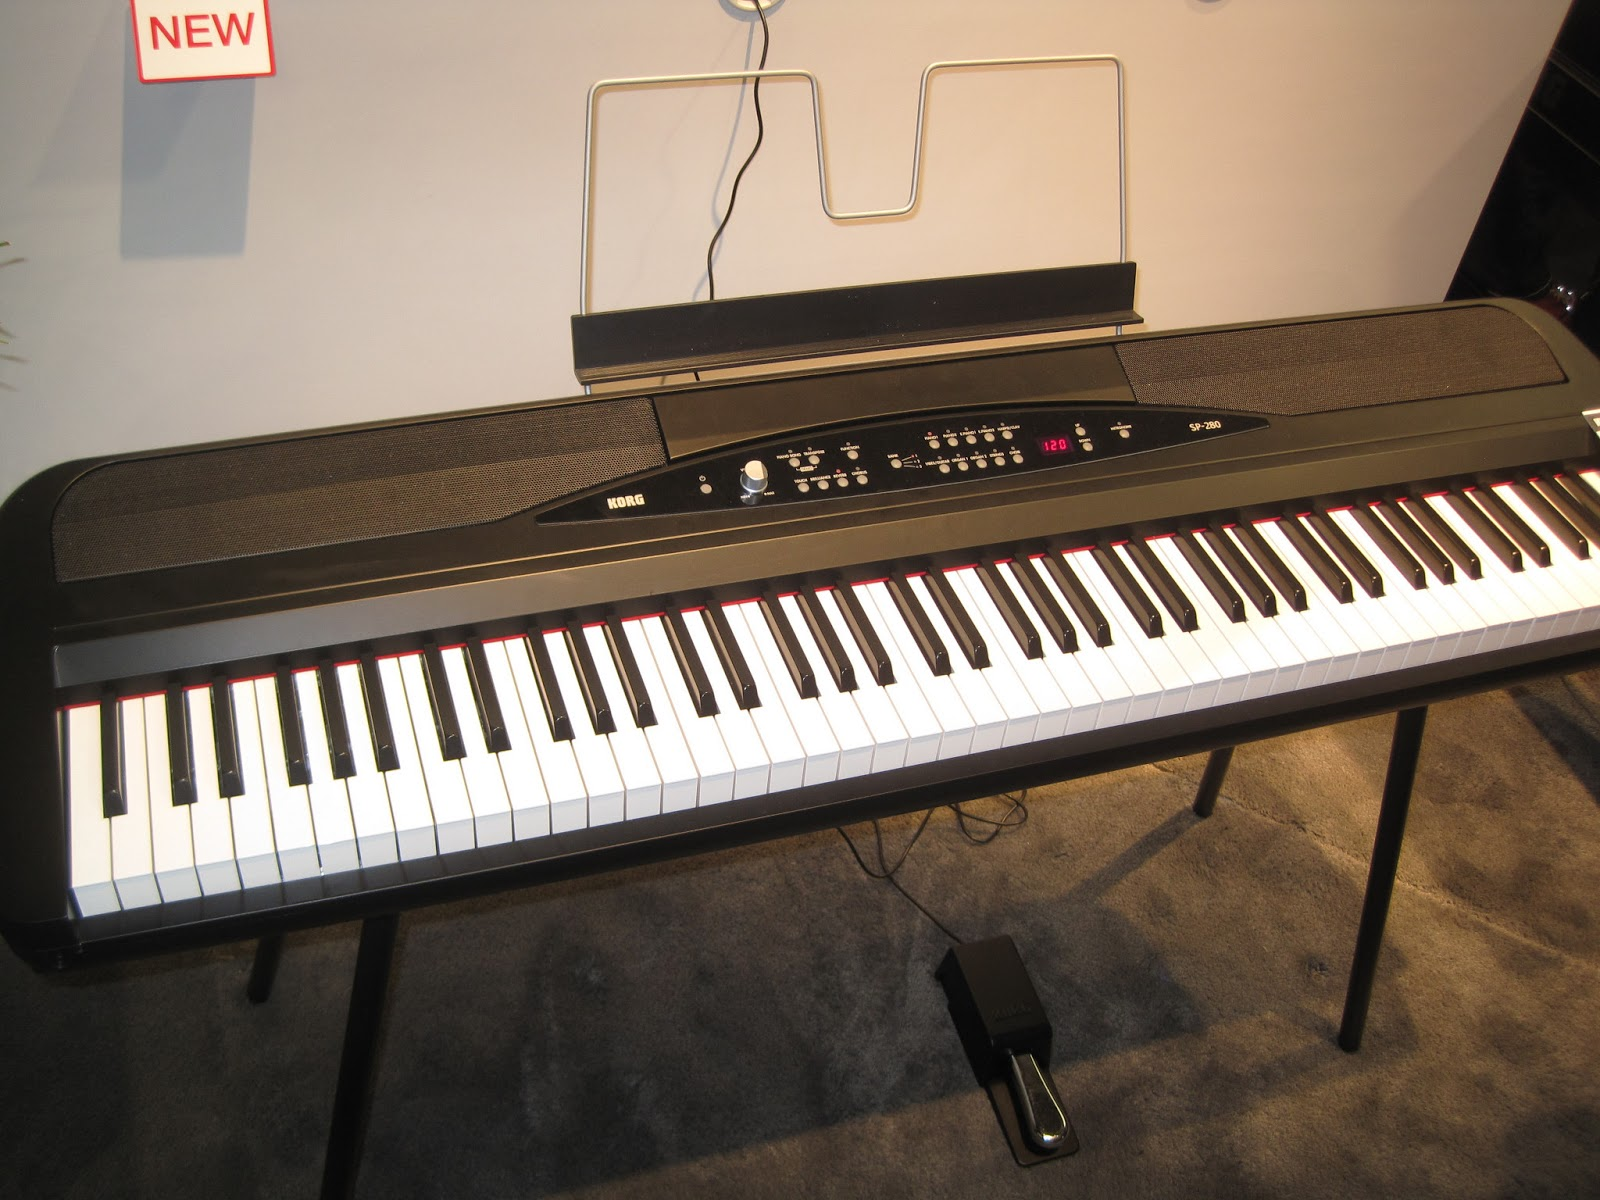 az piano reviews review korg lp380 korg sp280 digital pianos 2019. Black Bedroom Furniture Sets. Home Design Ideas